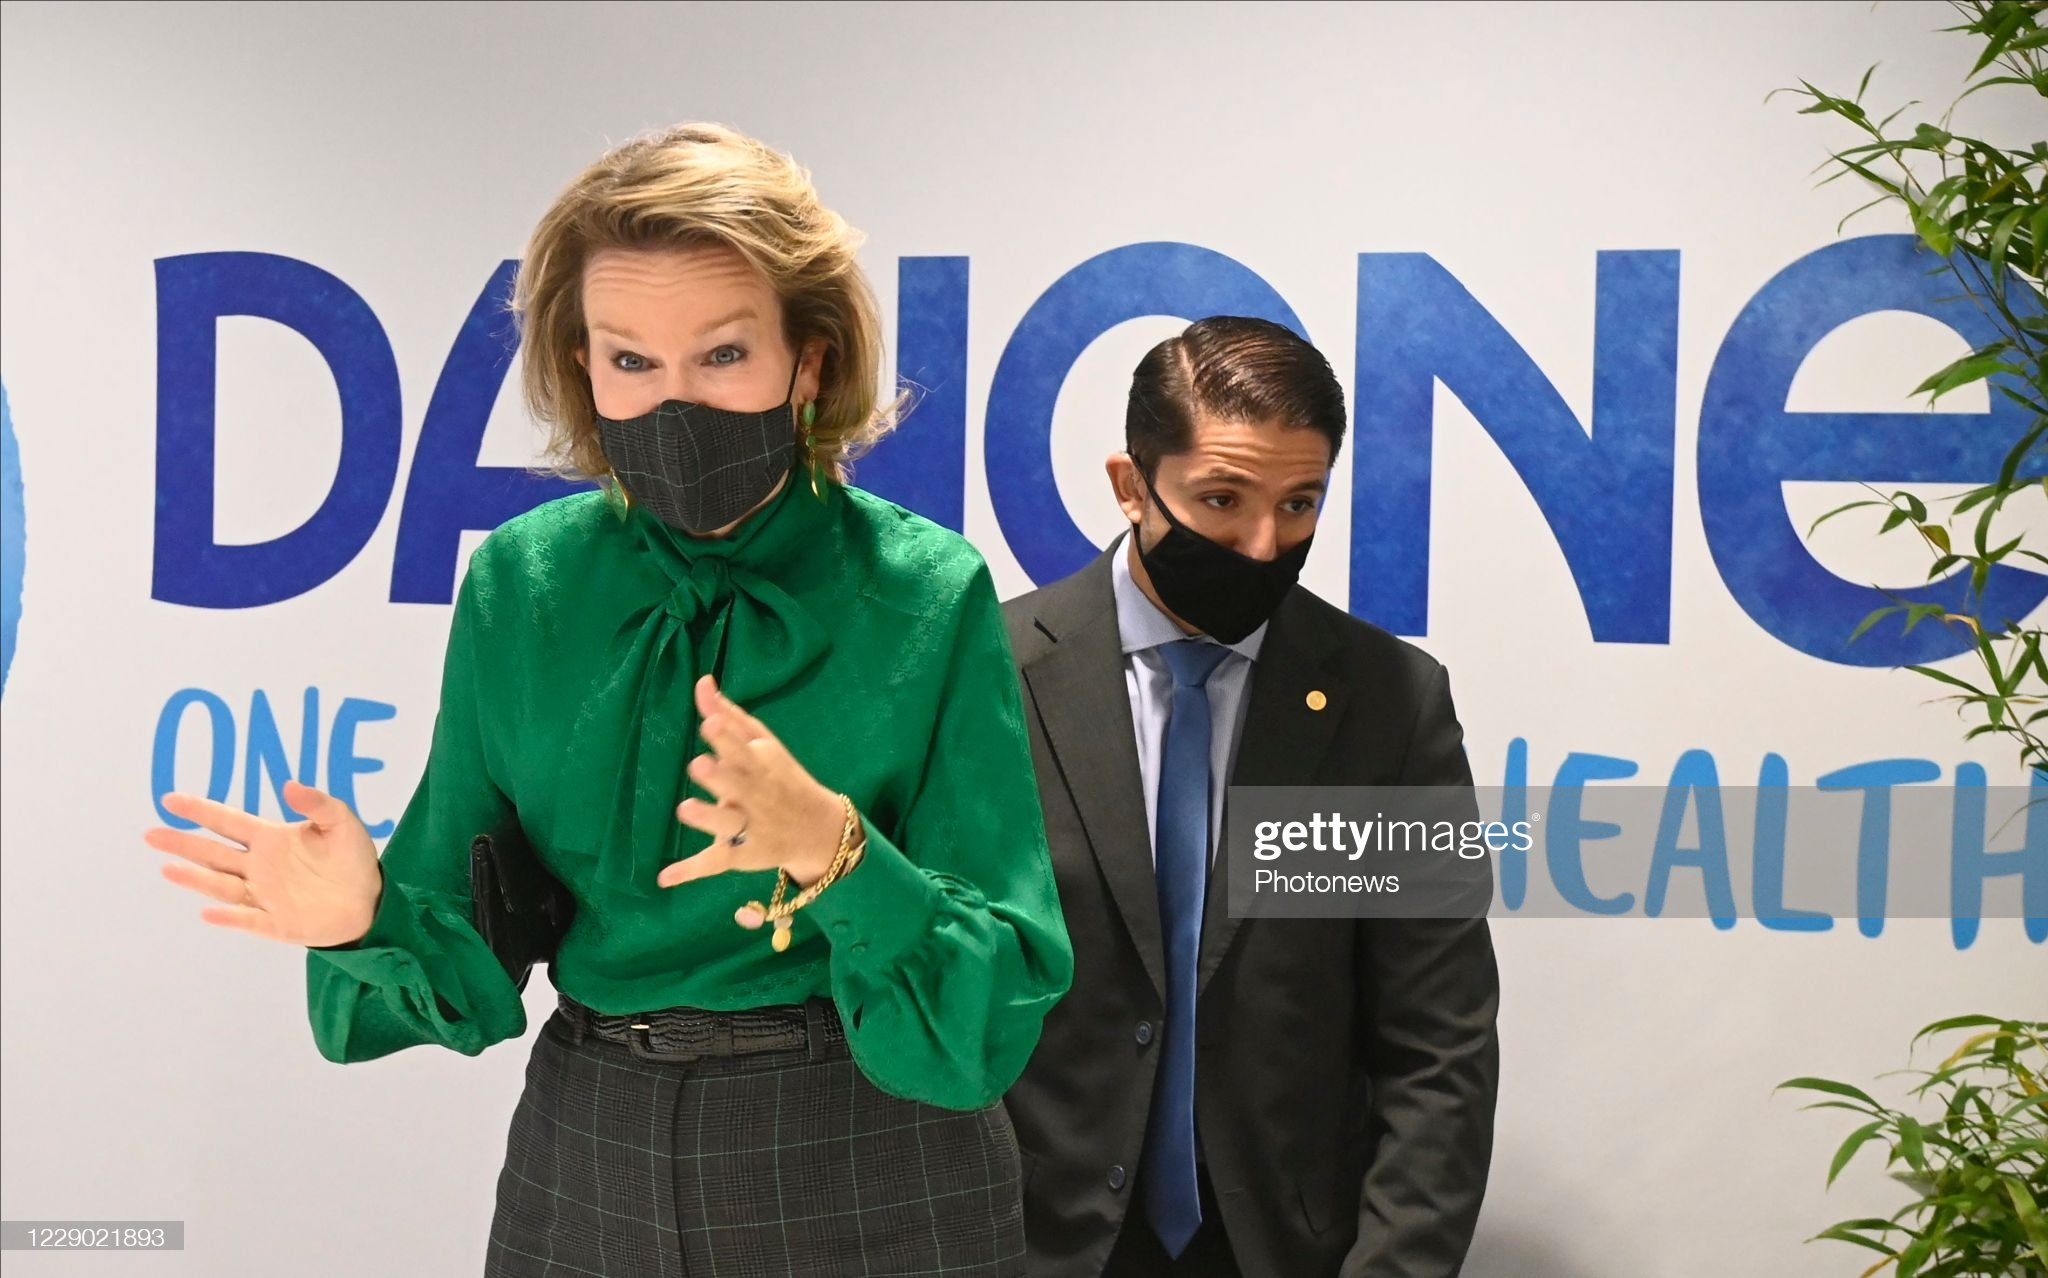 visit-of-queen-mathilde-to-danone-on-occasion-of-a-virtual-event-a-picture-id1229021893